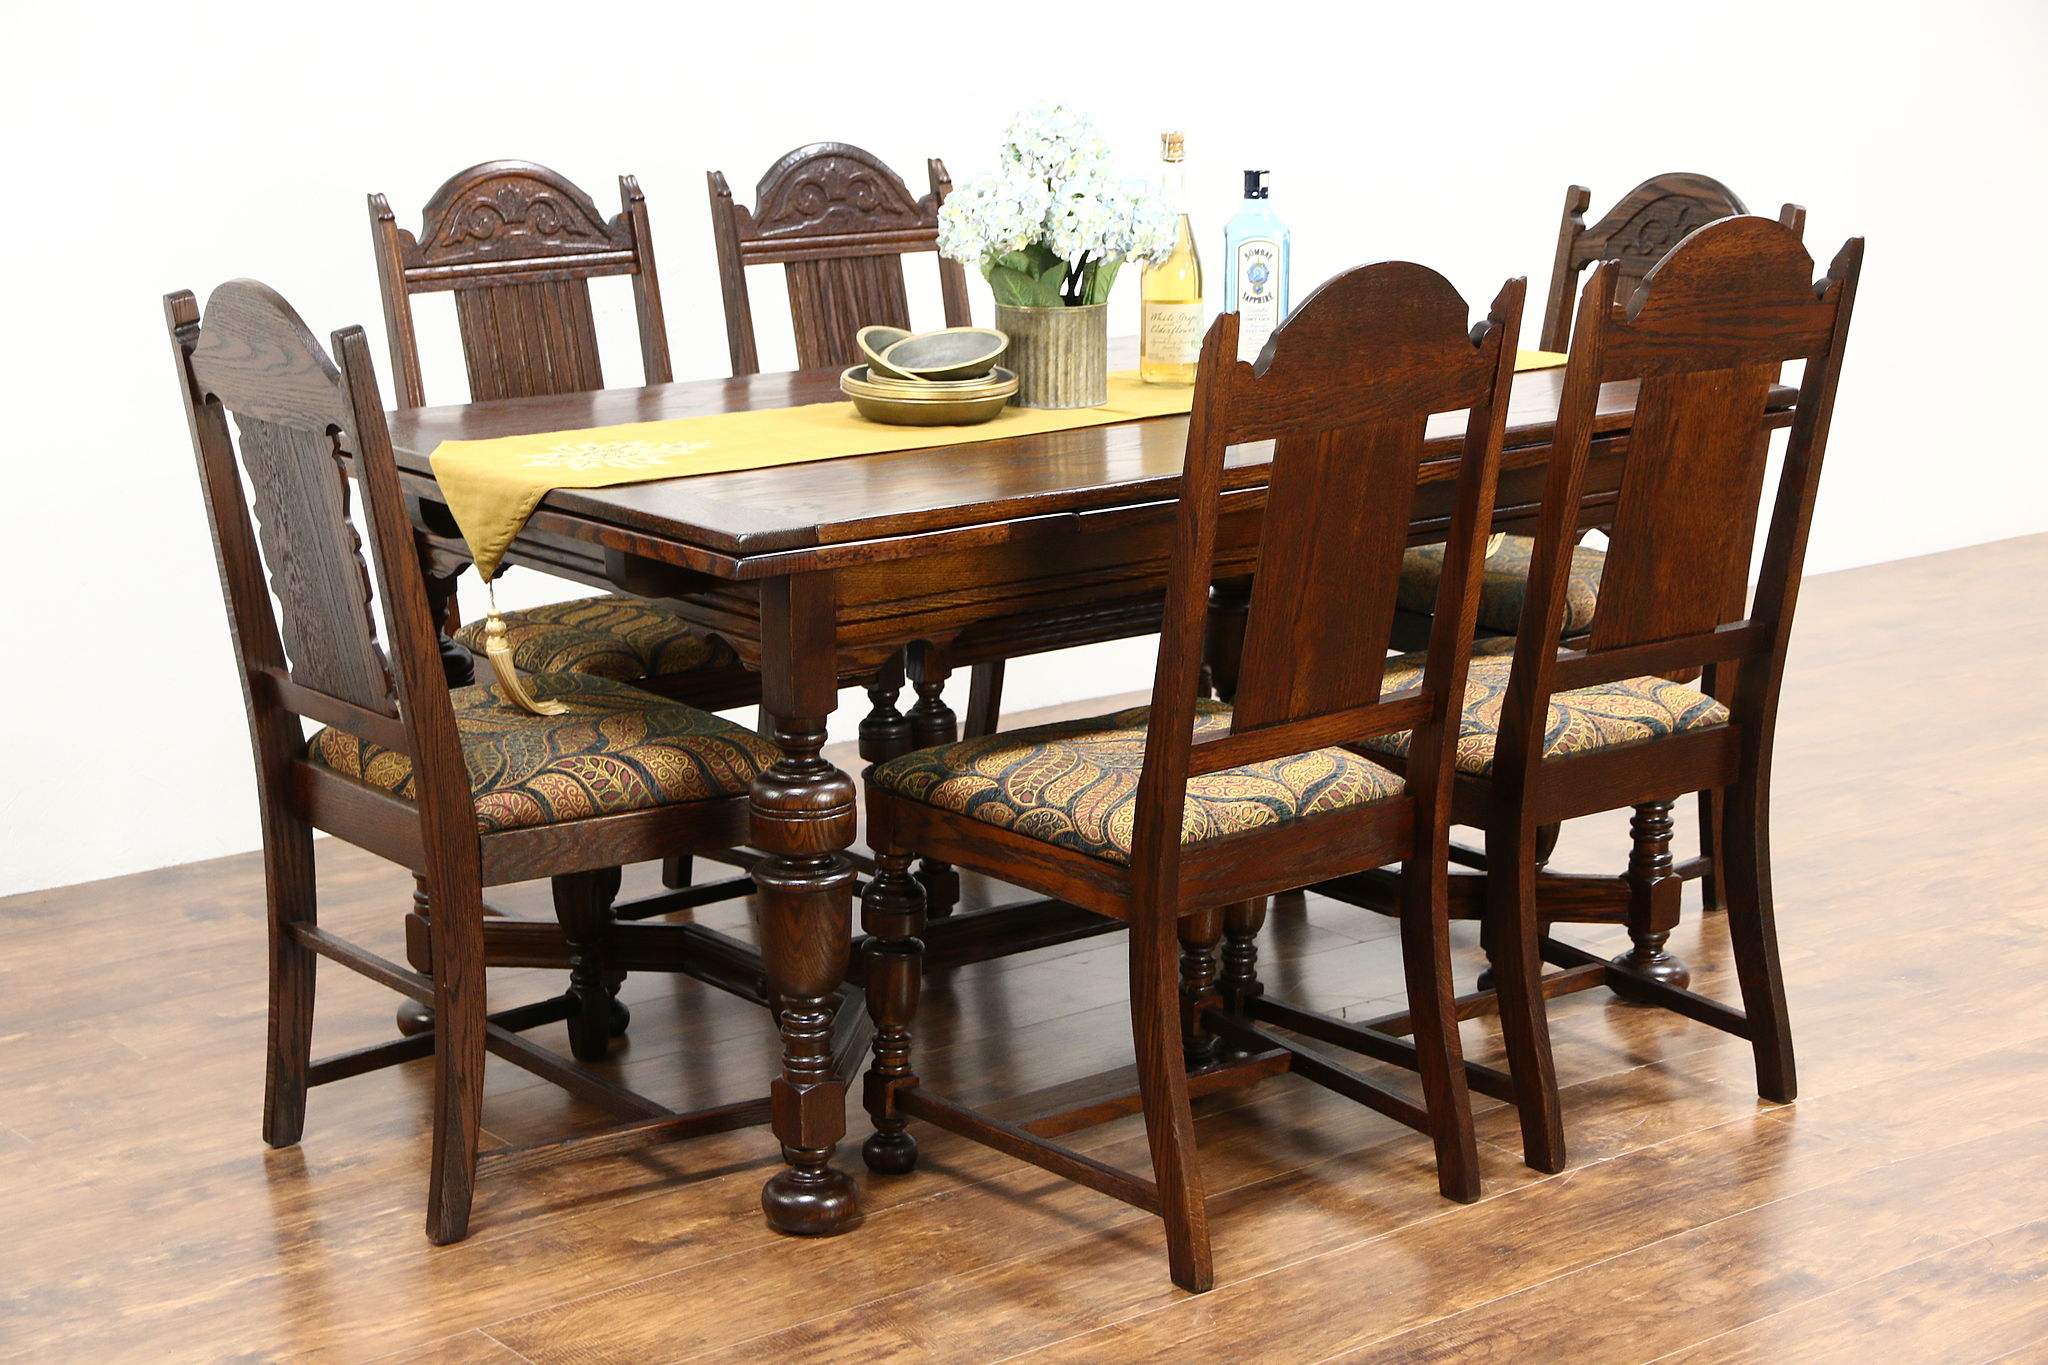 2 chair dining set folding used by a bishop sold english tudor antique 1920 oak table leaves 6 chairs harp gallery